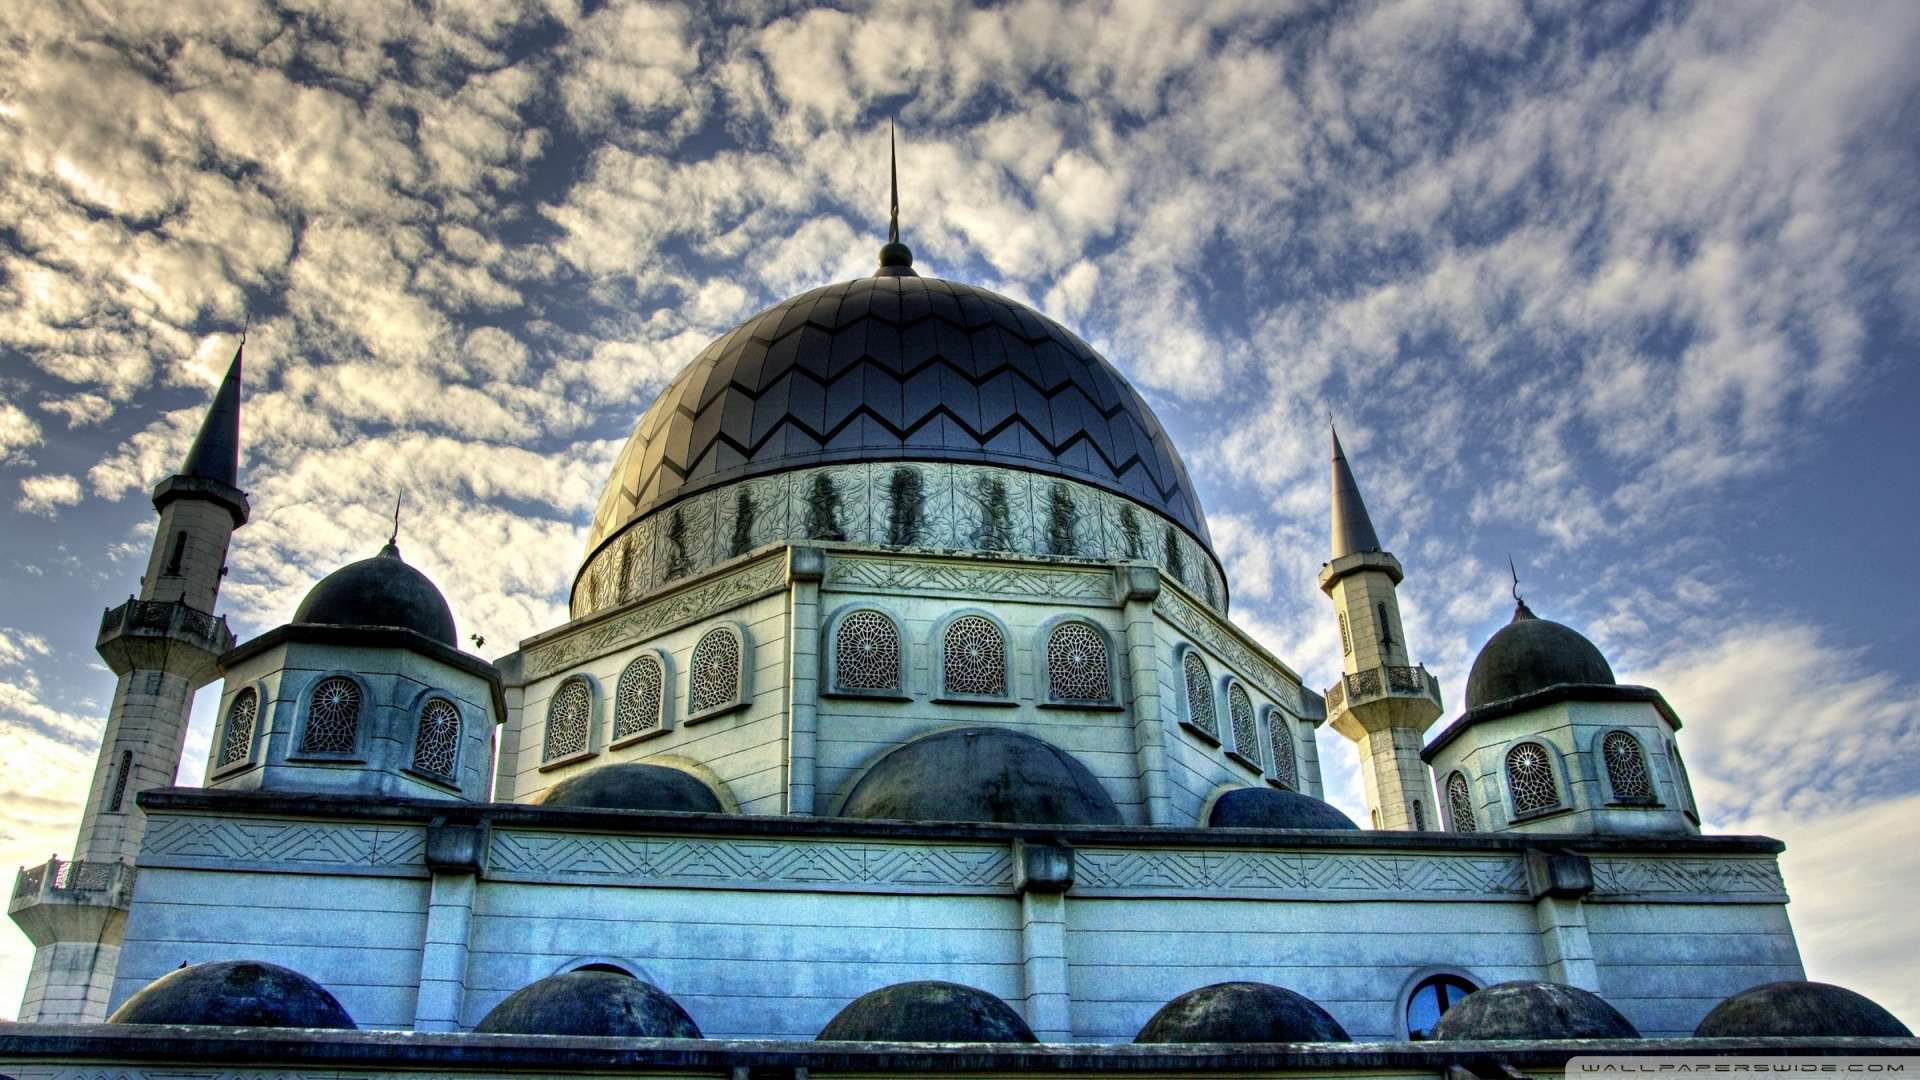 islamic 2 wallpaper 1080p hd is a fantastic hd wallpaper for your pc 1920x1080